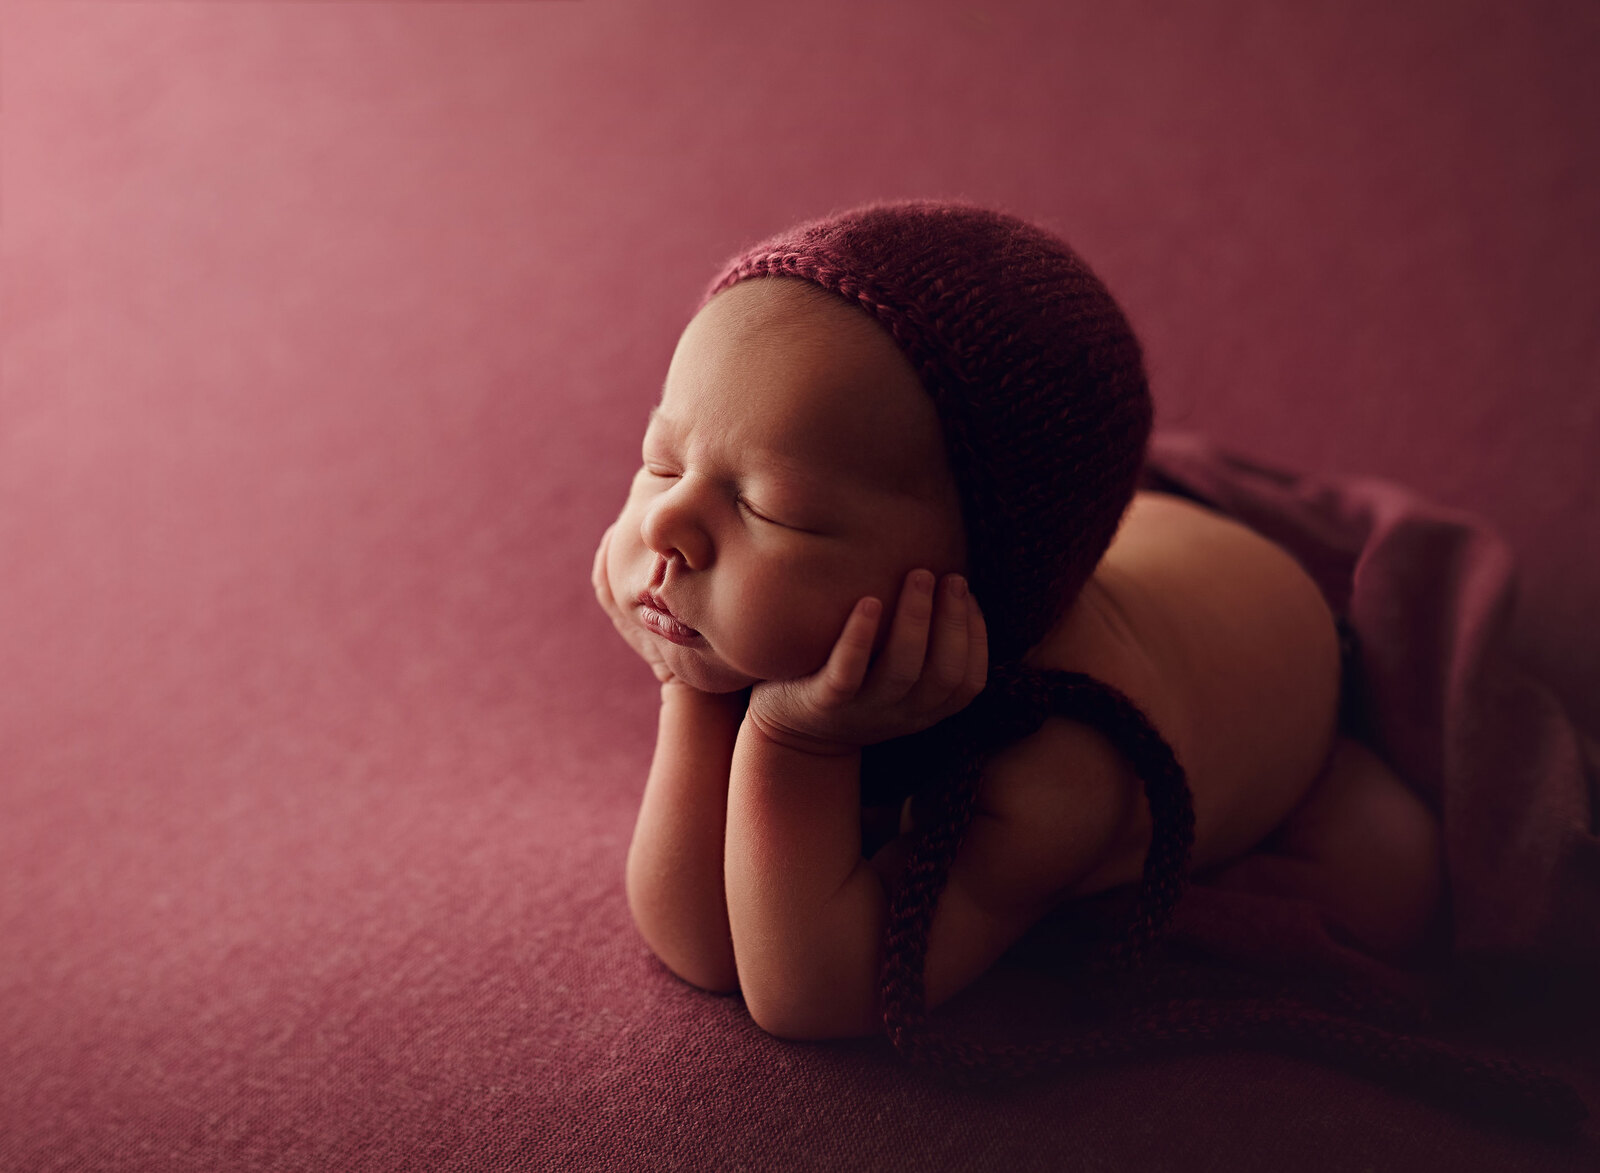 Newborn girl resting with chin in hands